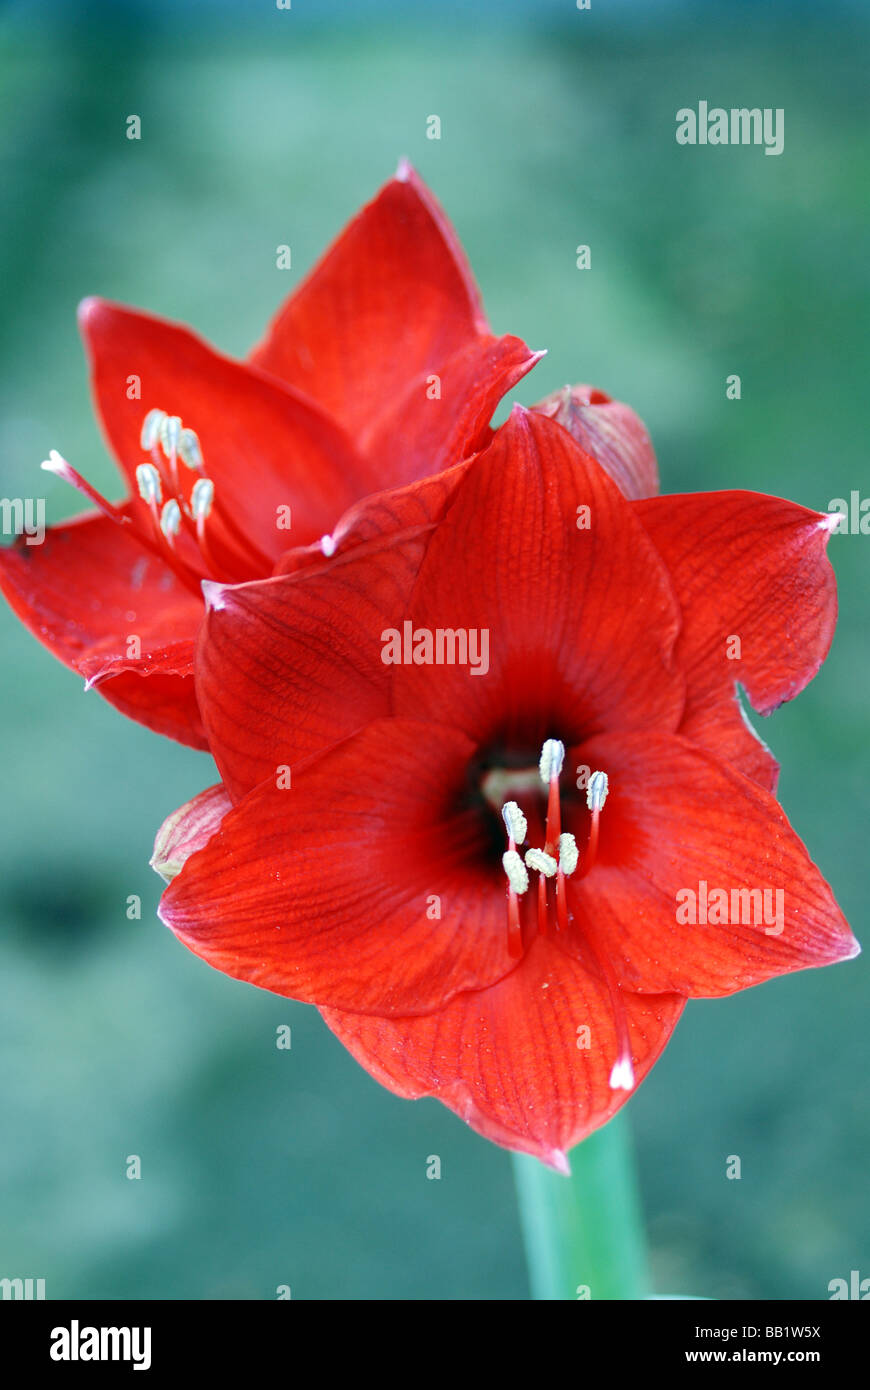 CLOSE UP OF RED AMARYLLIS FLOWER Stock Photo